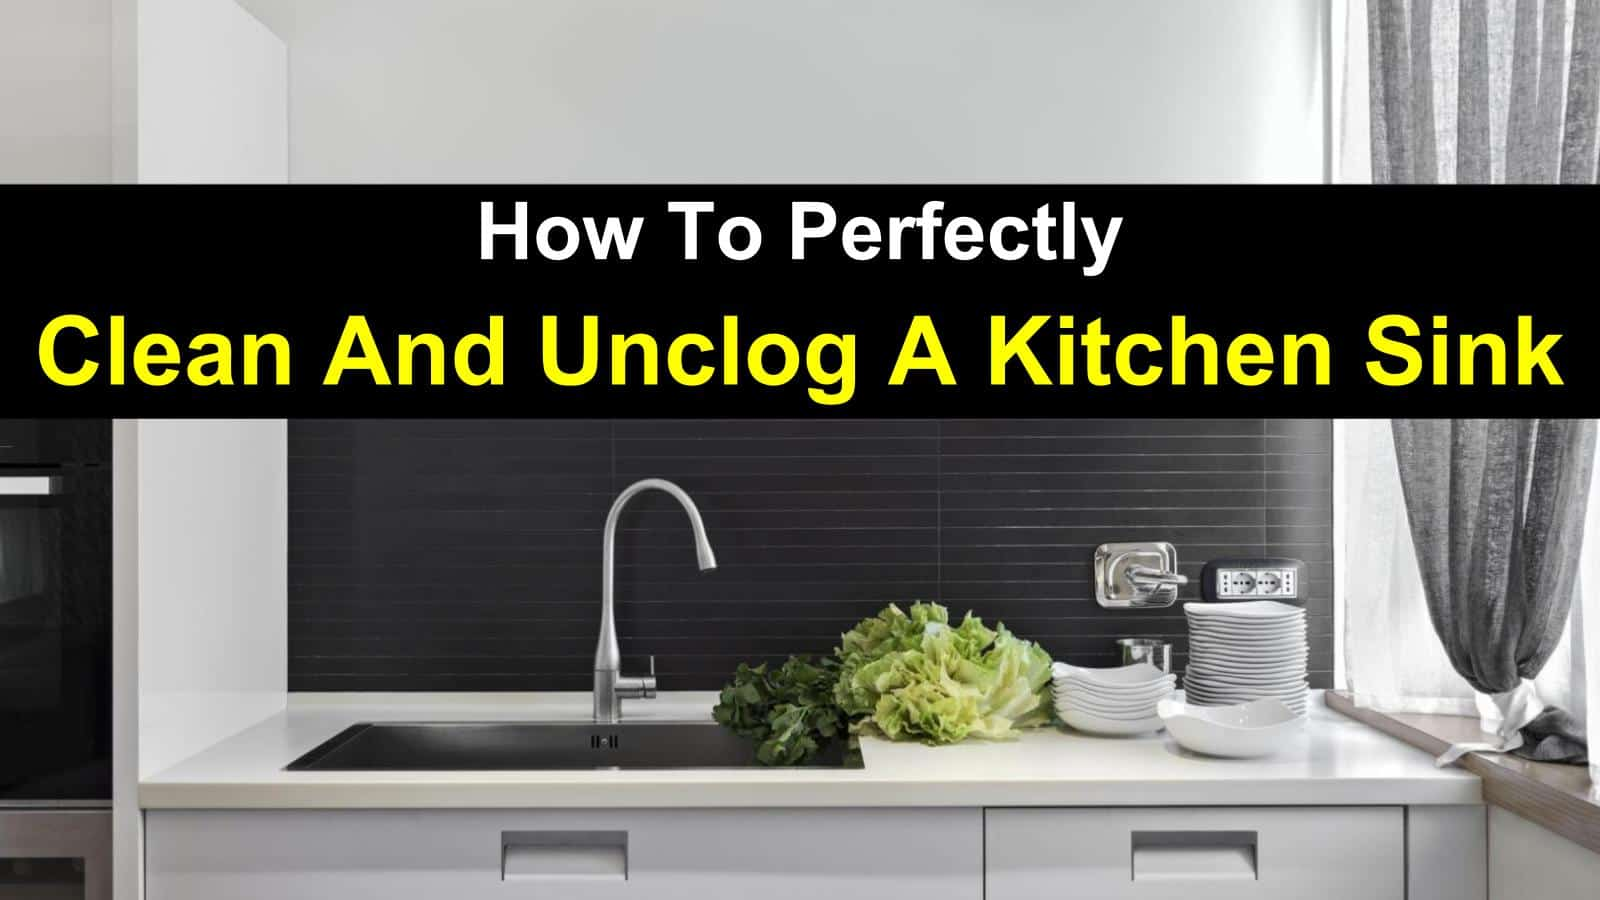 Clear A Kitchen Sink Blockage How to clean and unclog a kitchen sink title img 1g how to unclog a kitchen sink and cleaning img workwithnaturefo